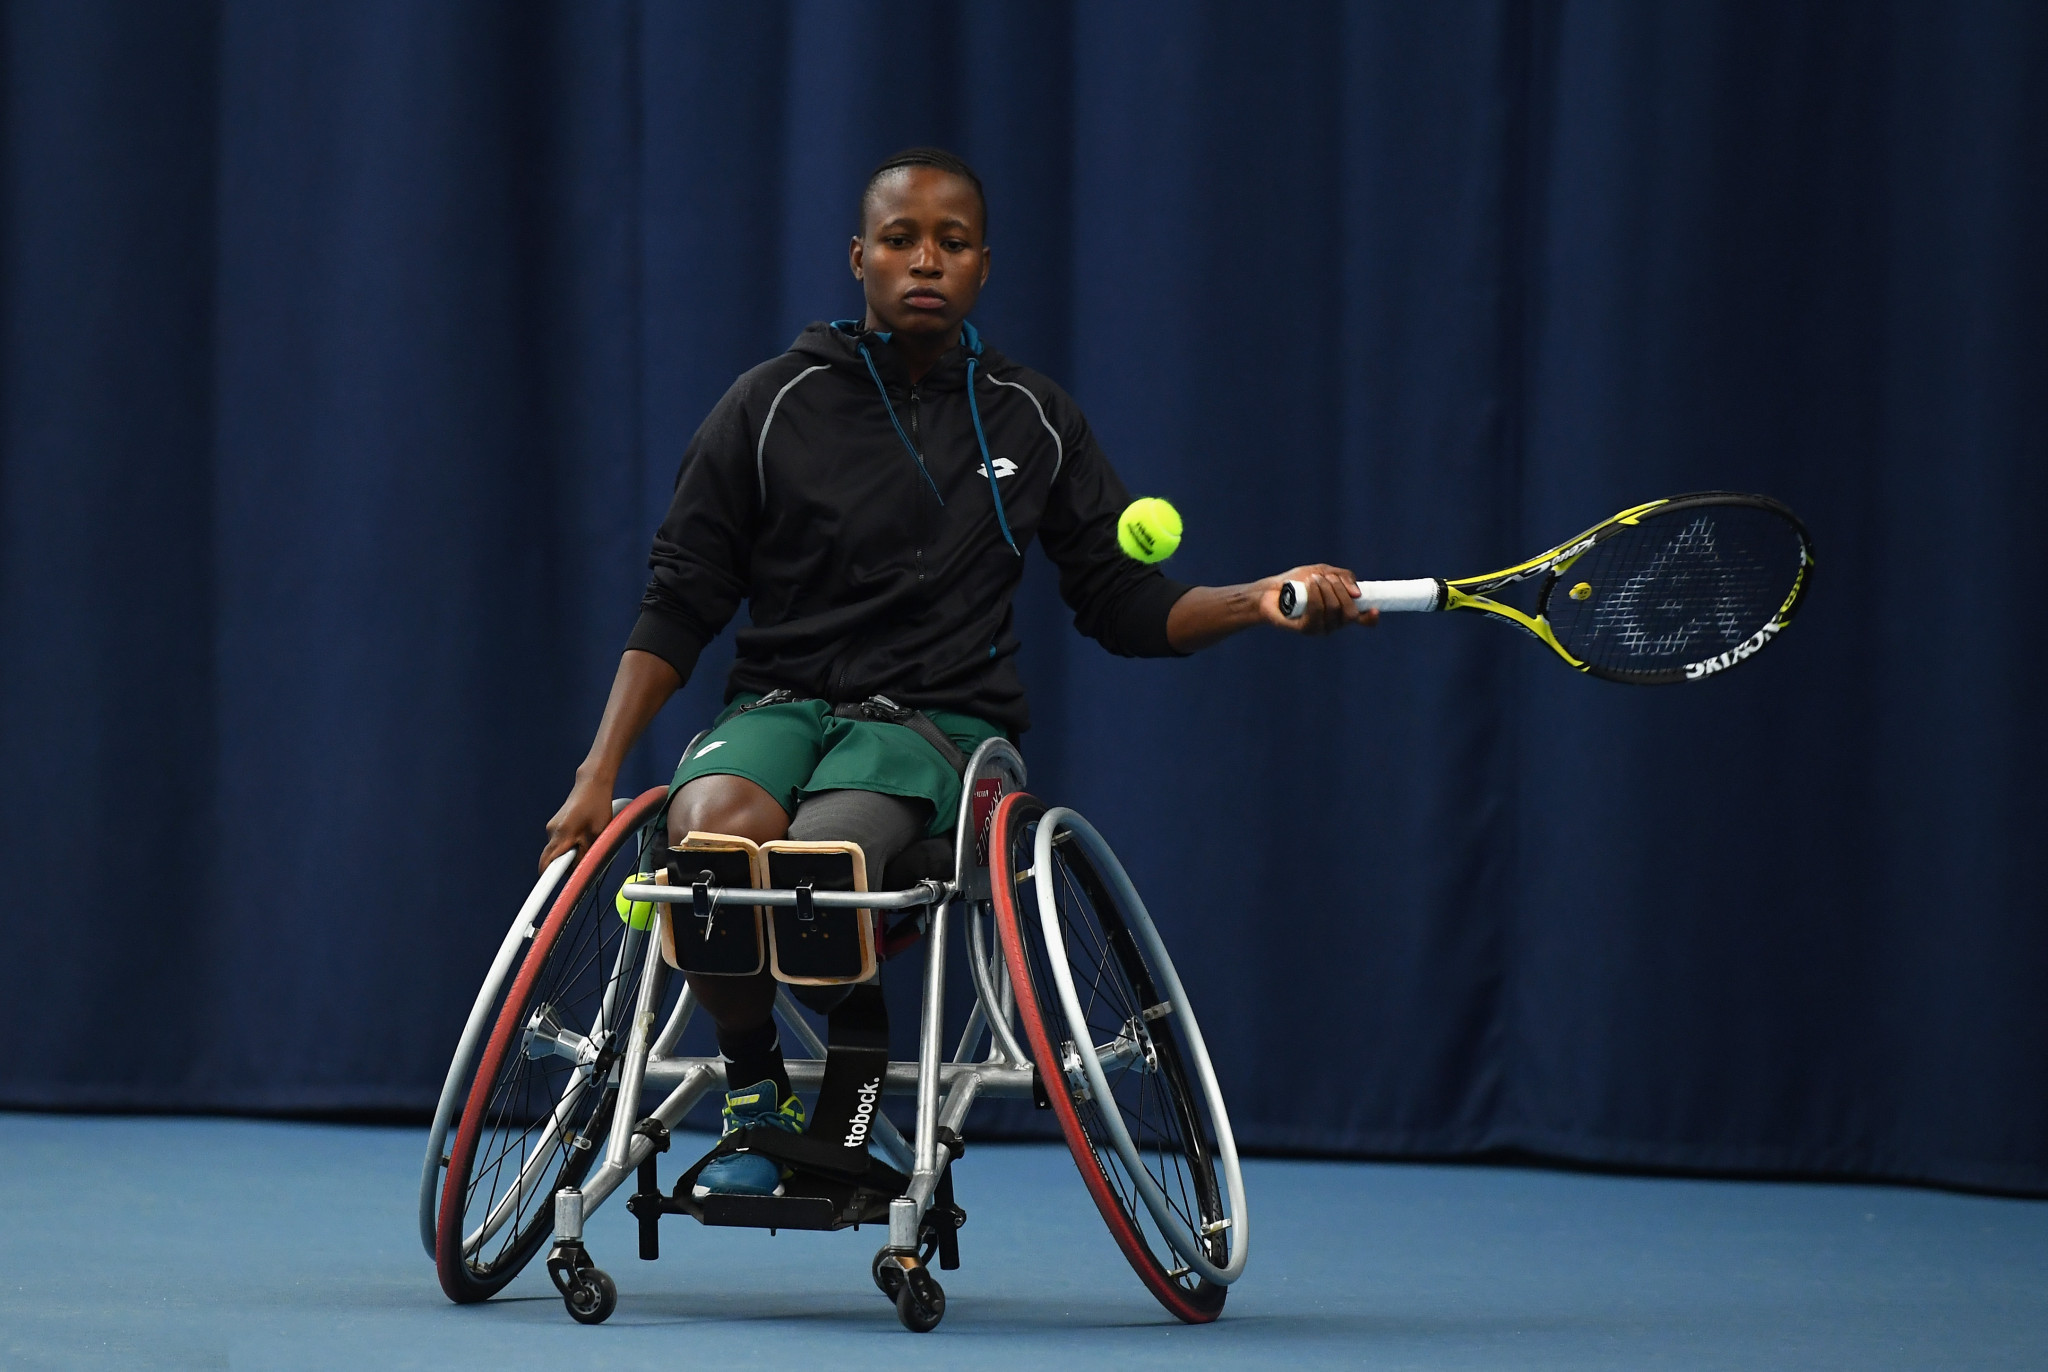 South African wheelchair tennis star Montjane aiming for first Australian Open final